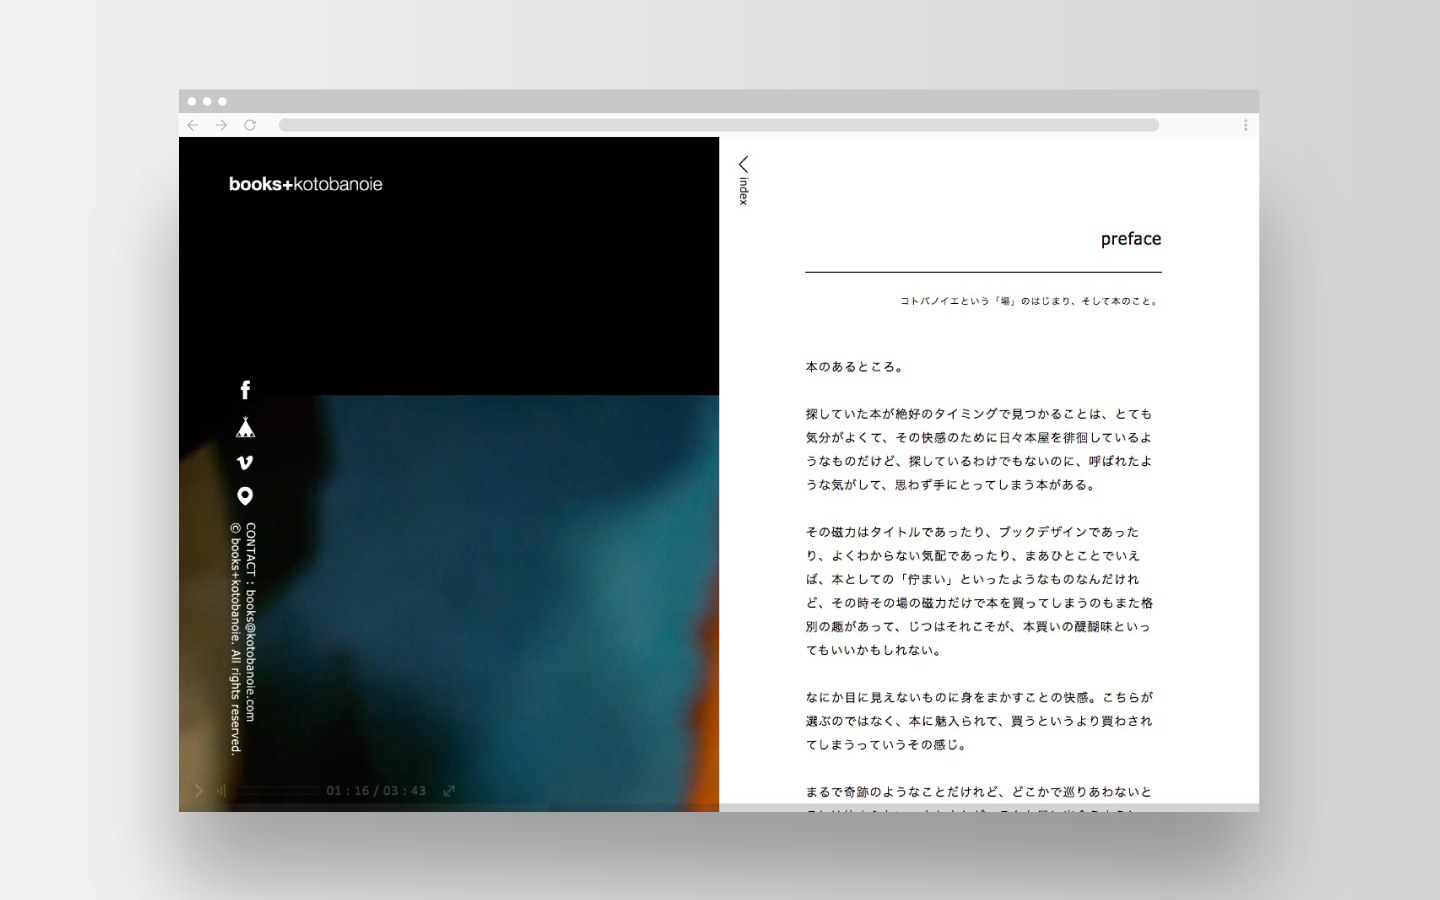 books+kotobanoie|Web Design